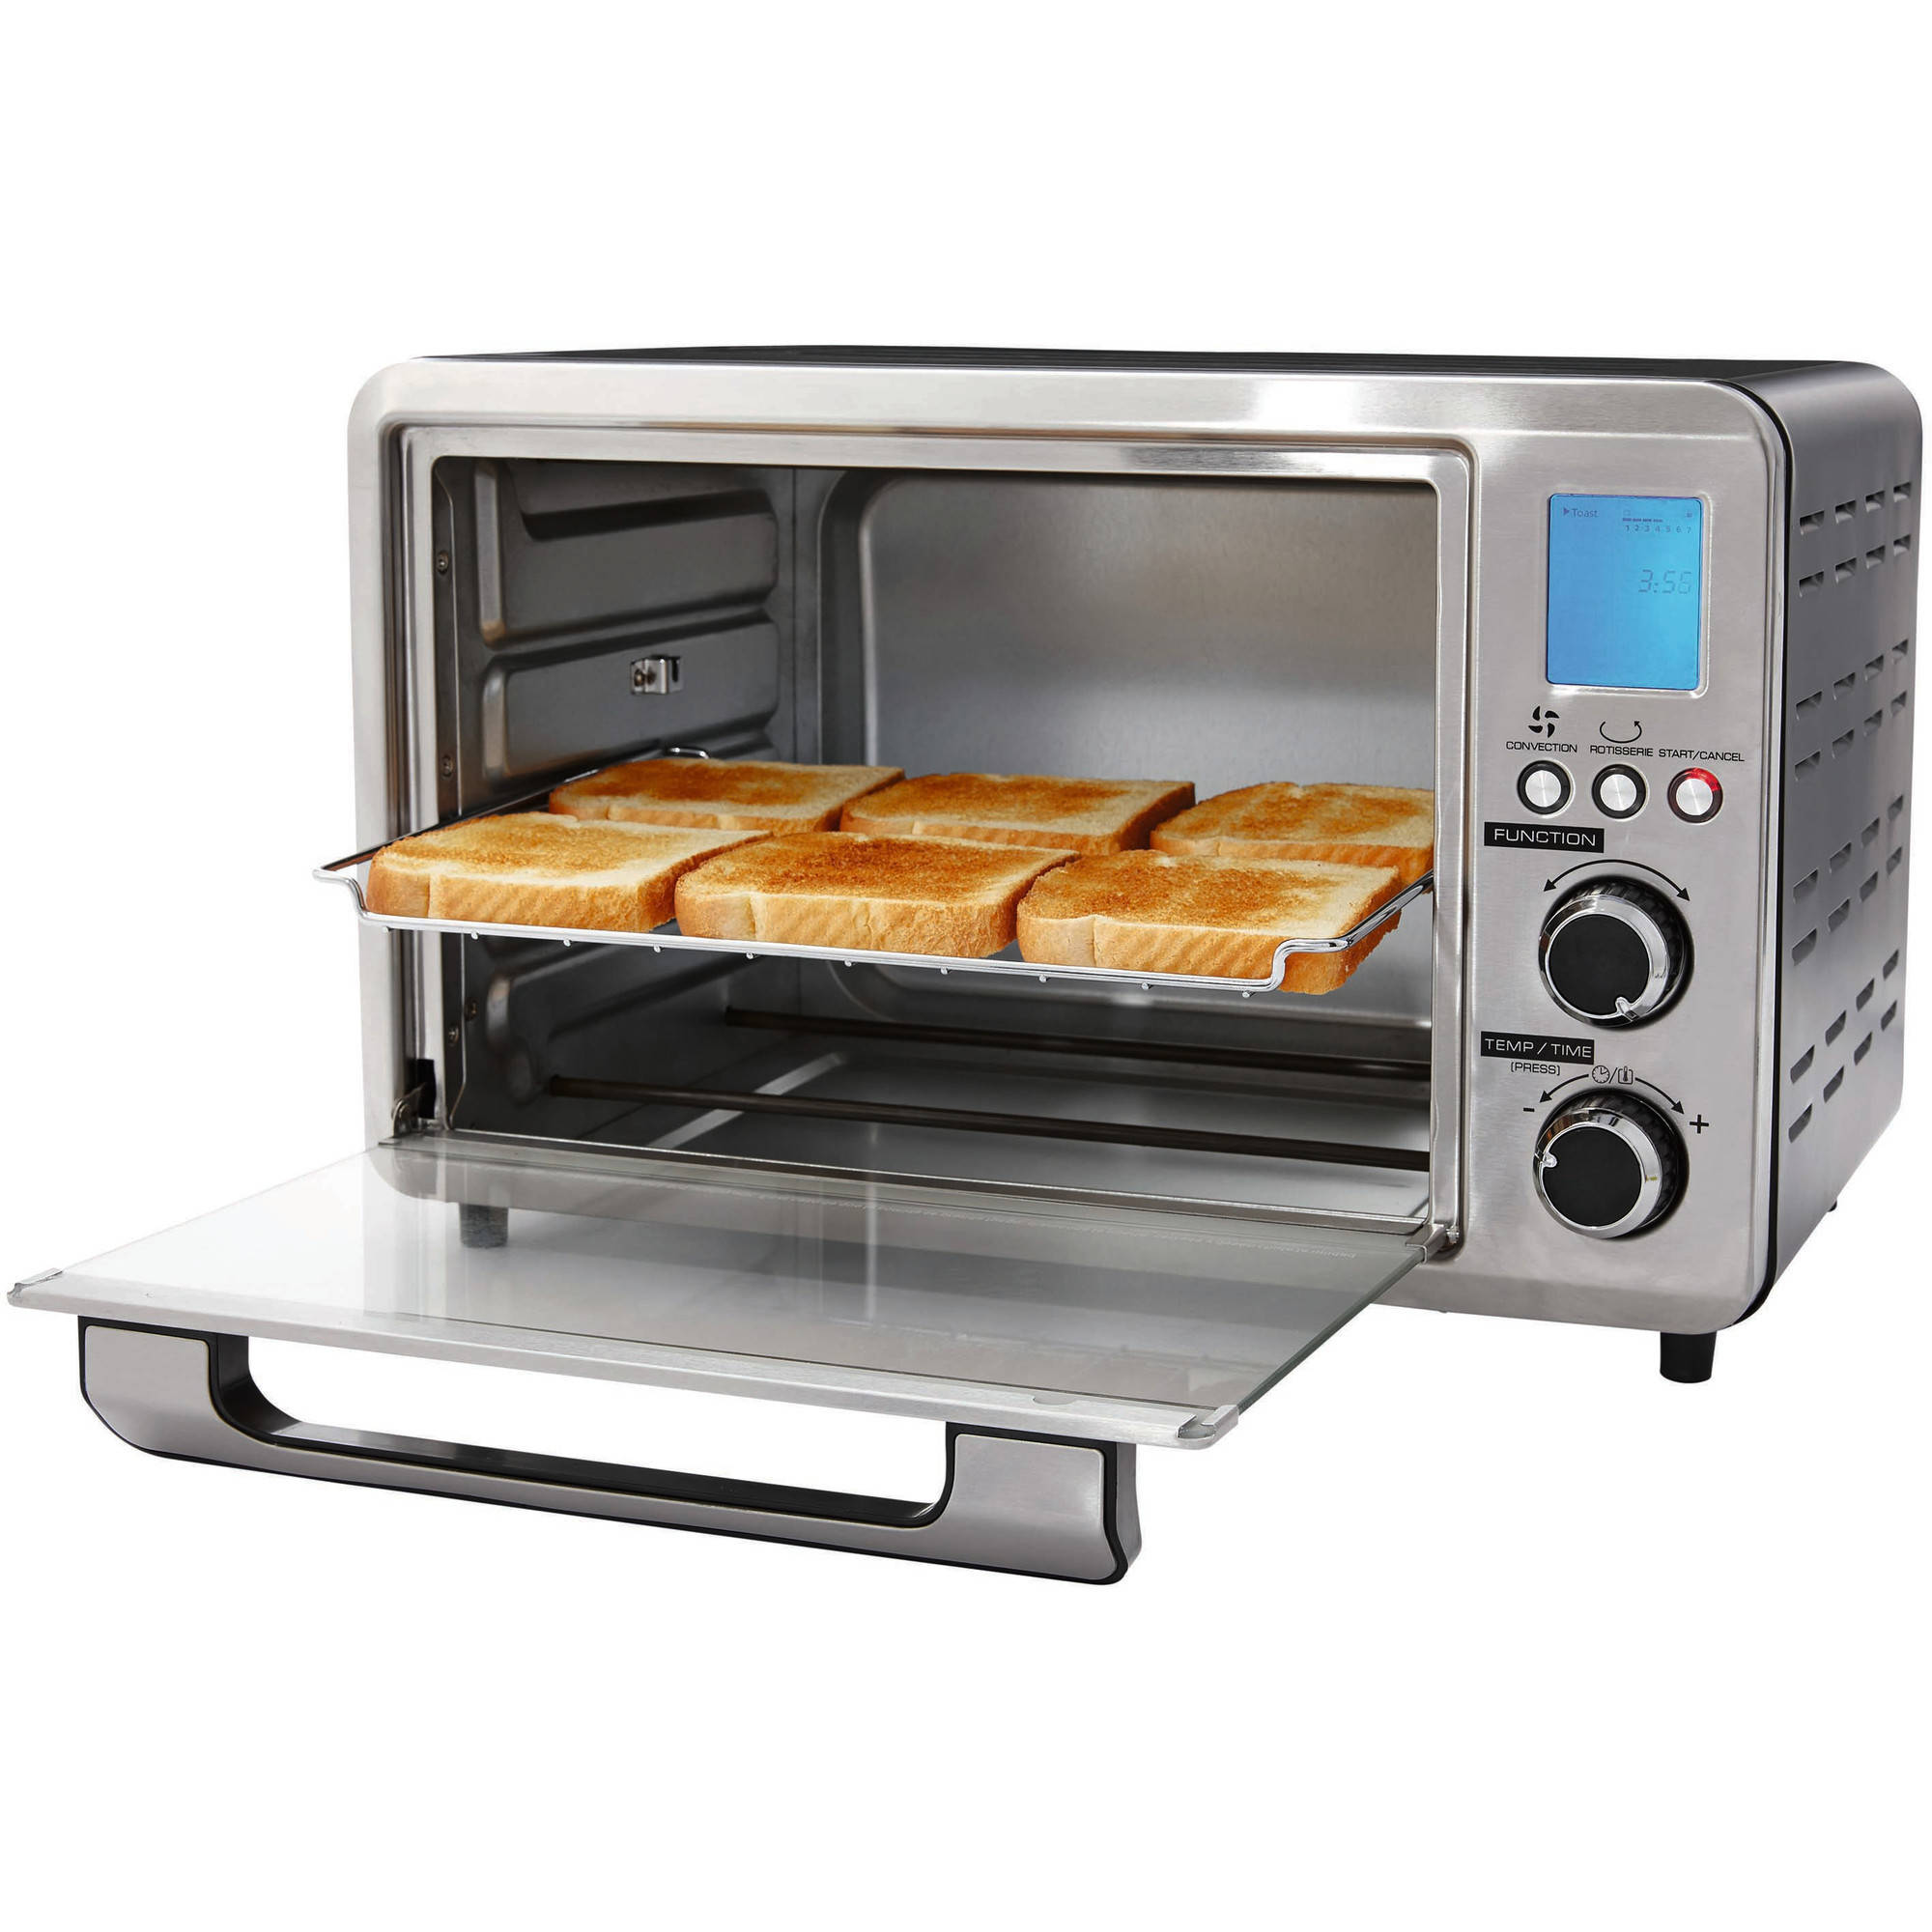 beach larger dp amazon broiler over com slice view hamilton convection toaster